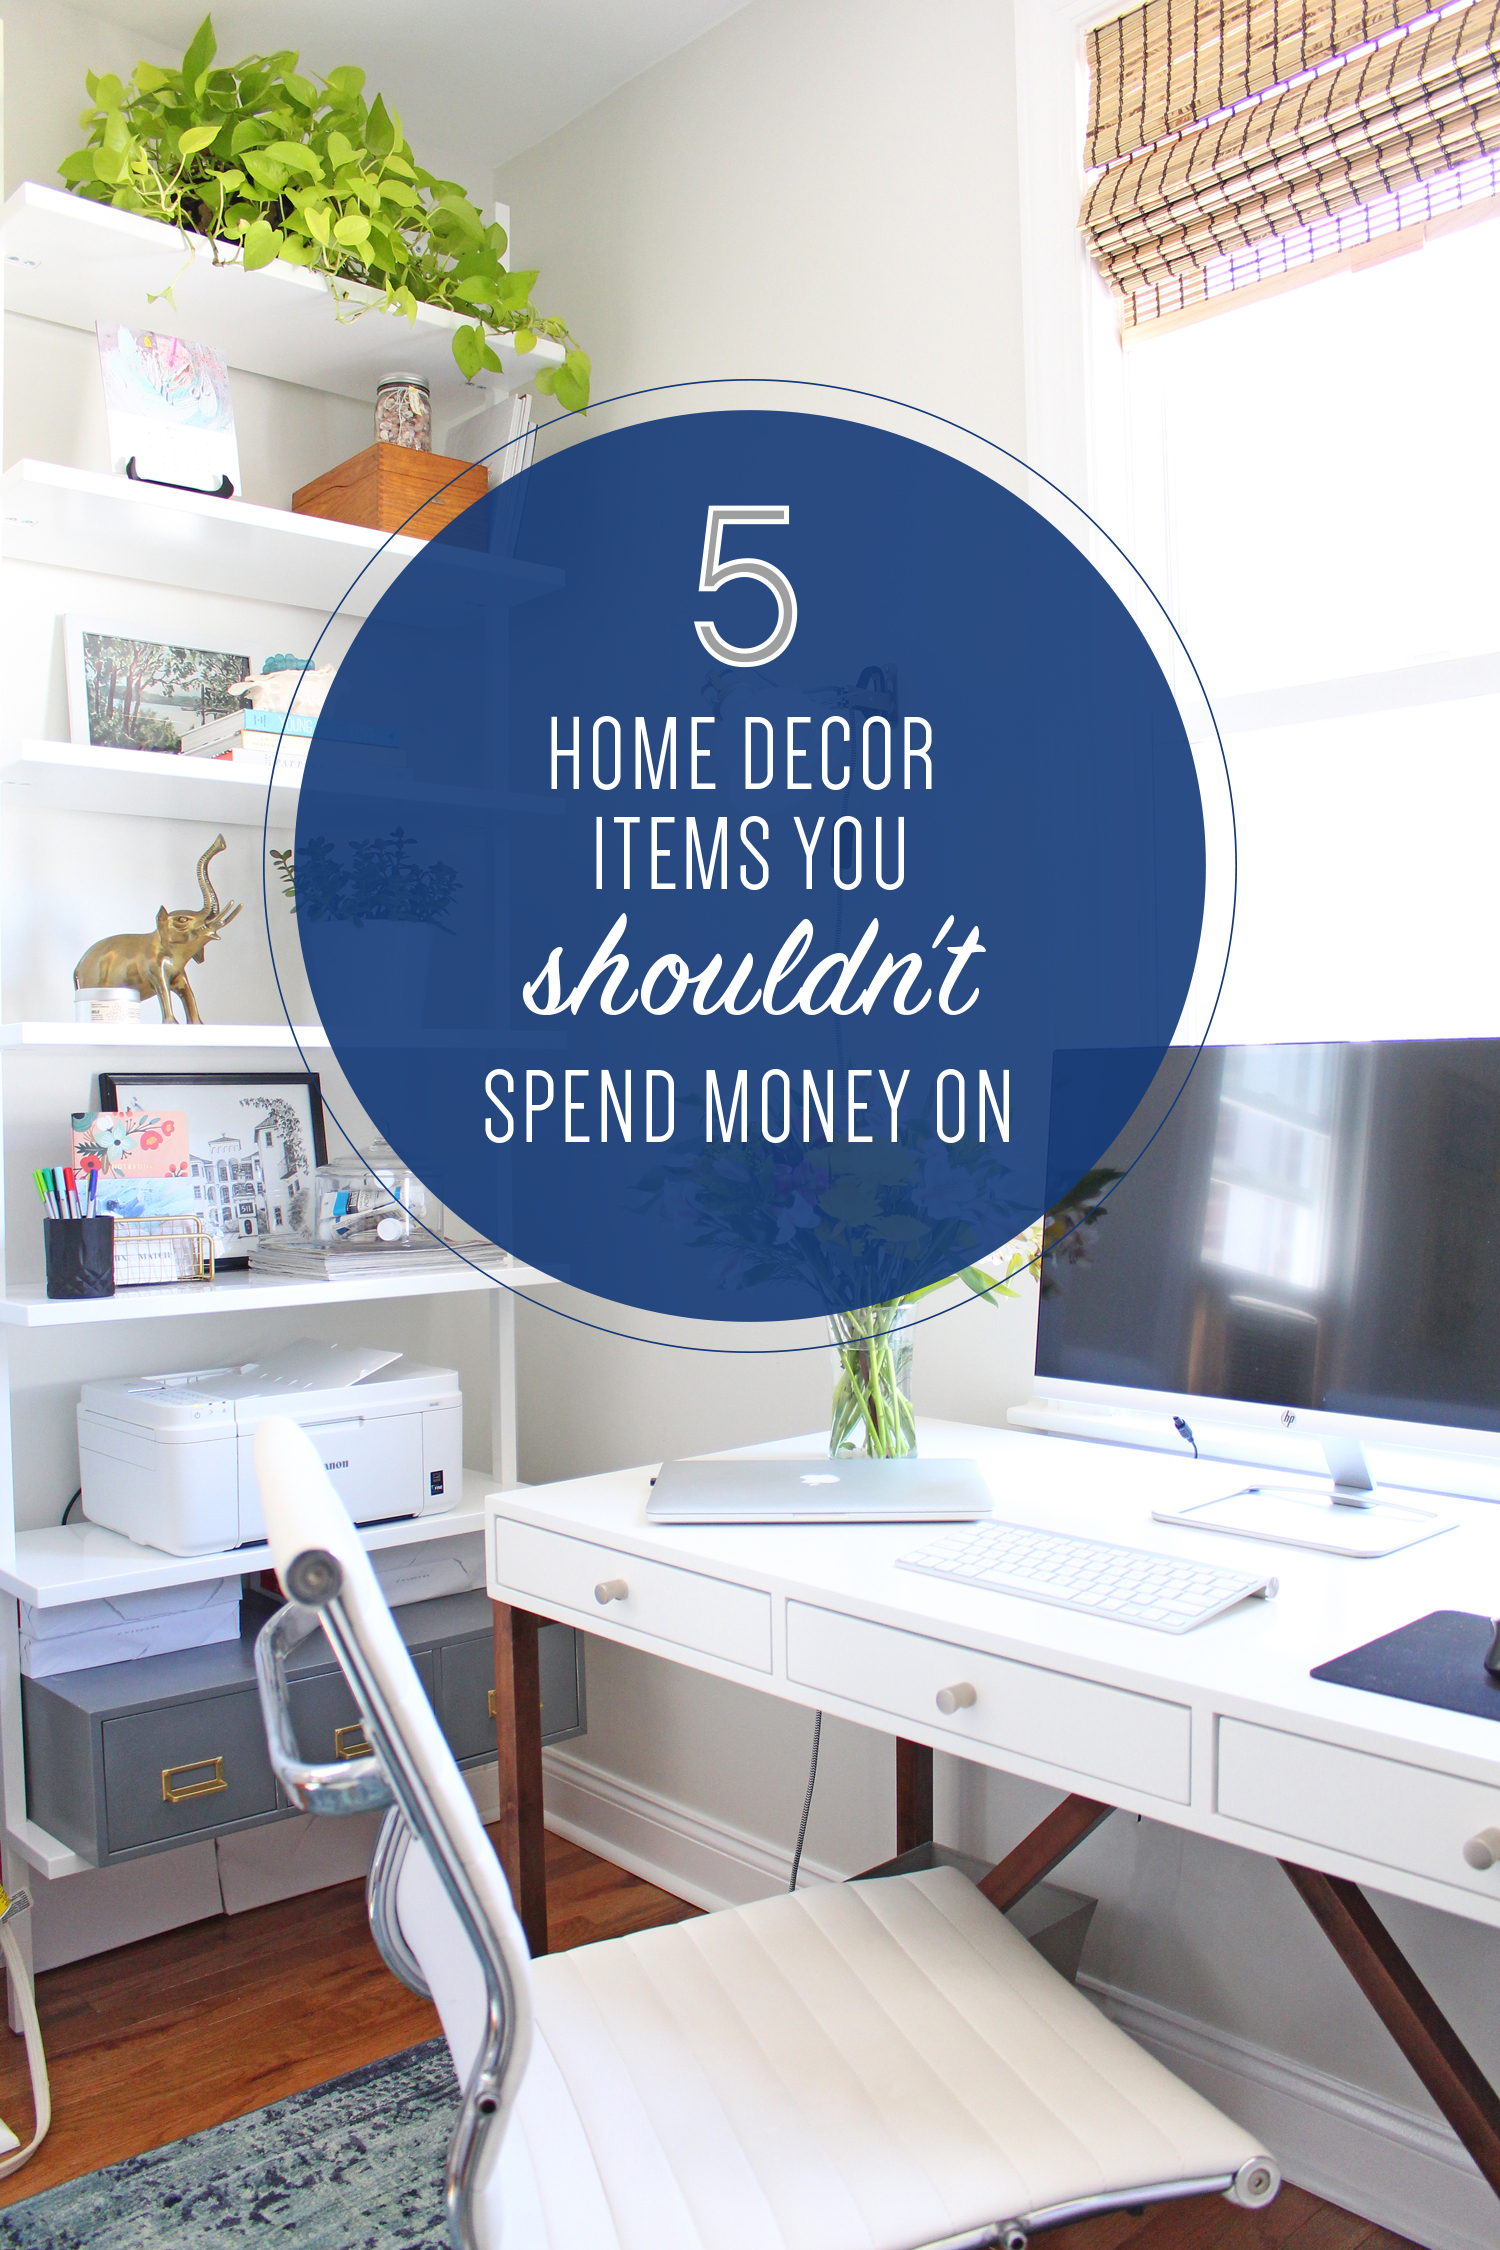 5 Home Decor Items You Shouldn't Spend Money On |Affordable decorating, budget-friendly decorating tips, budget-friendly design ideas